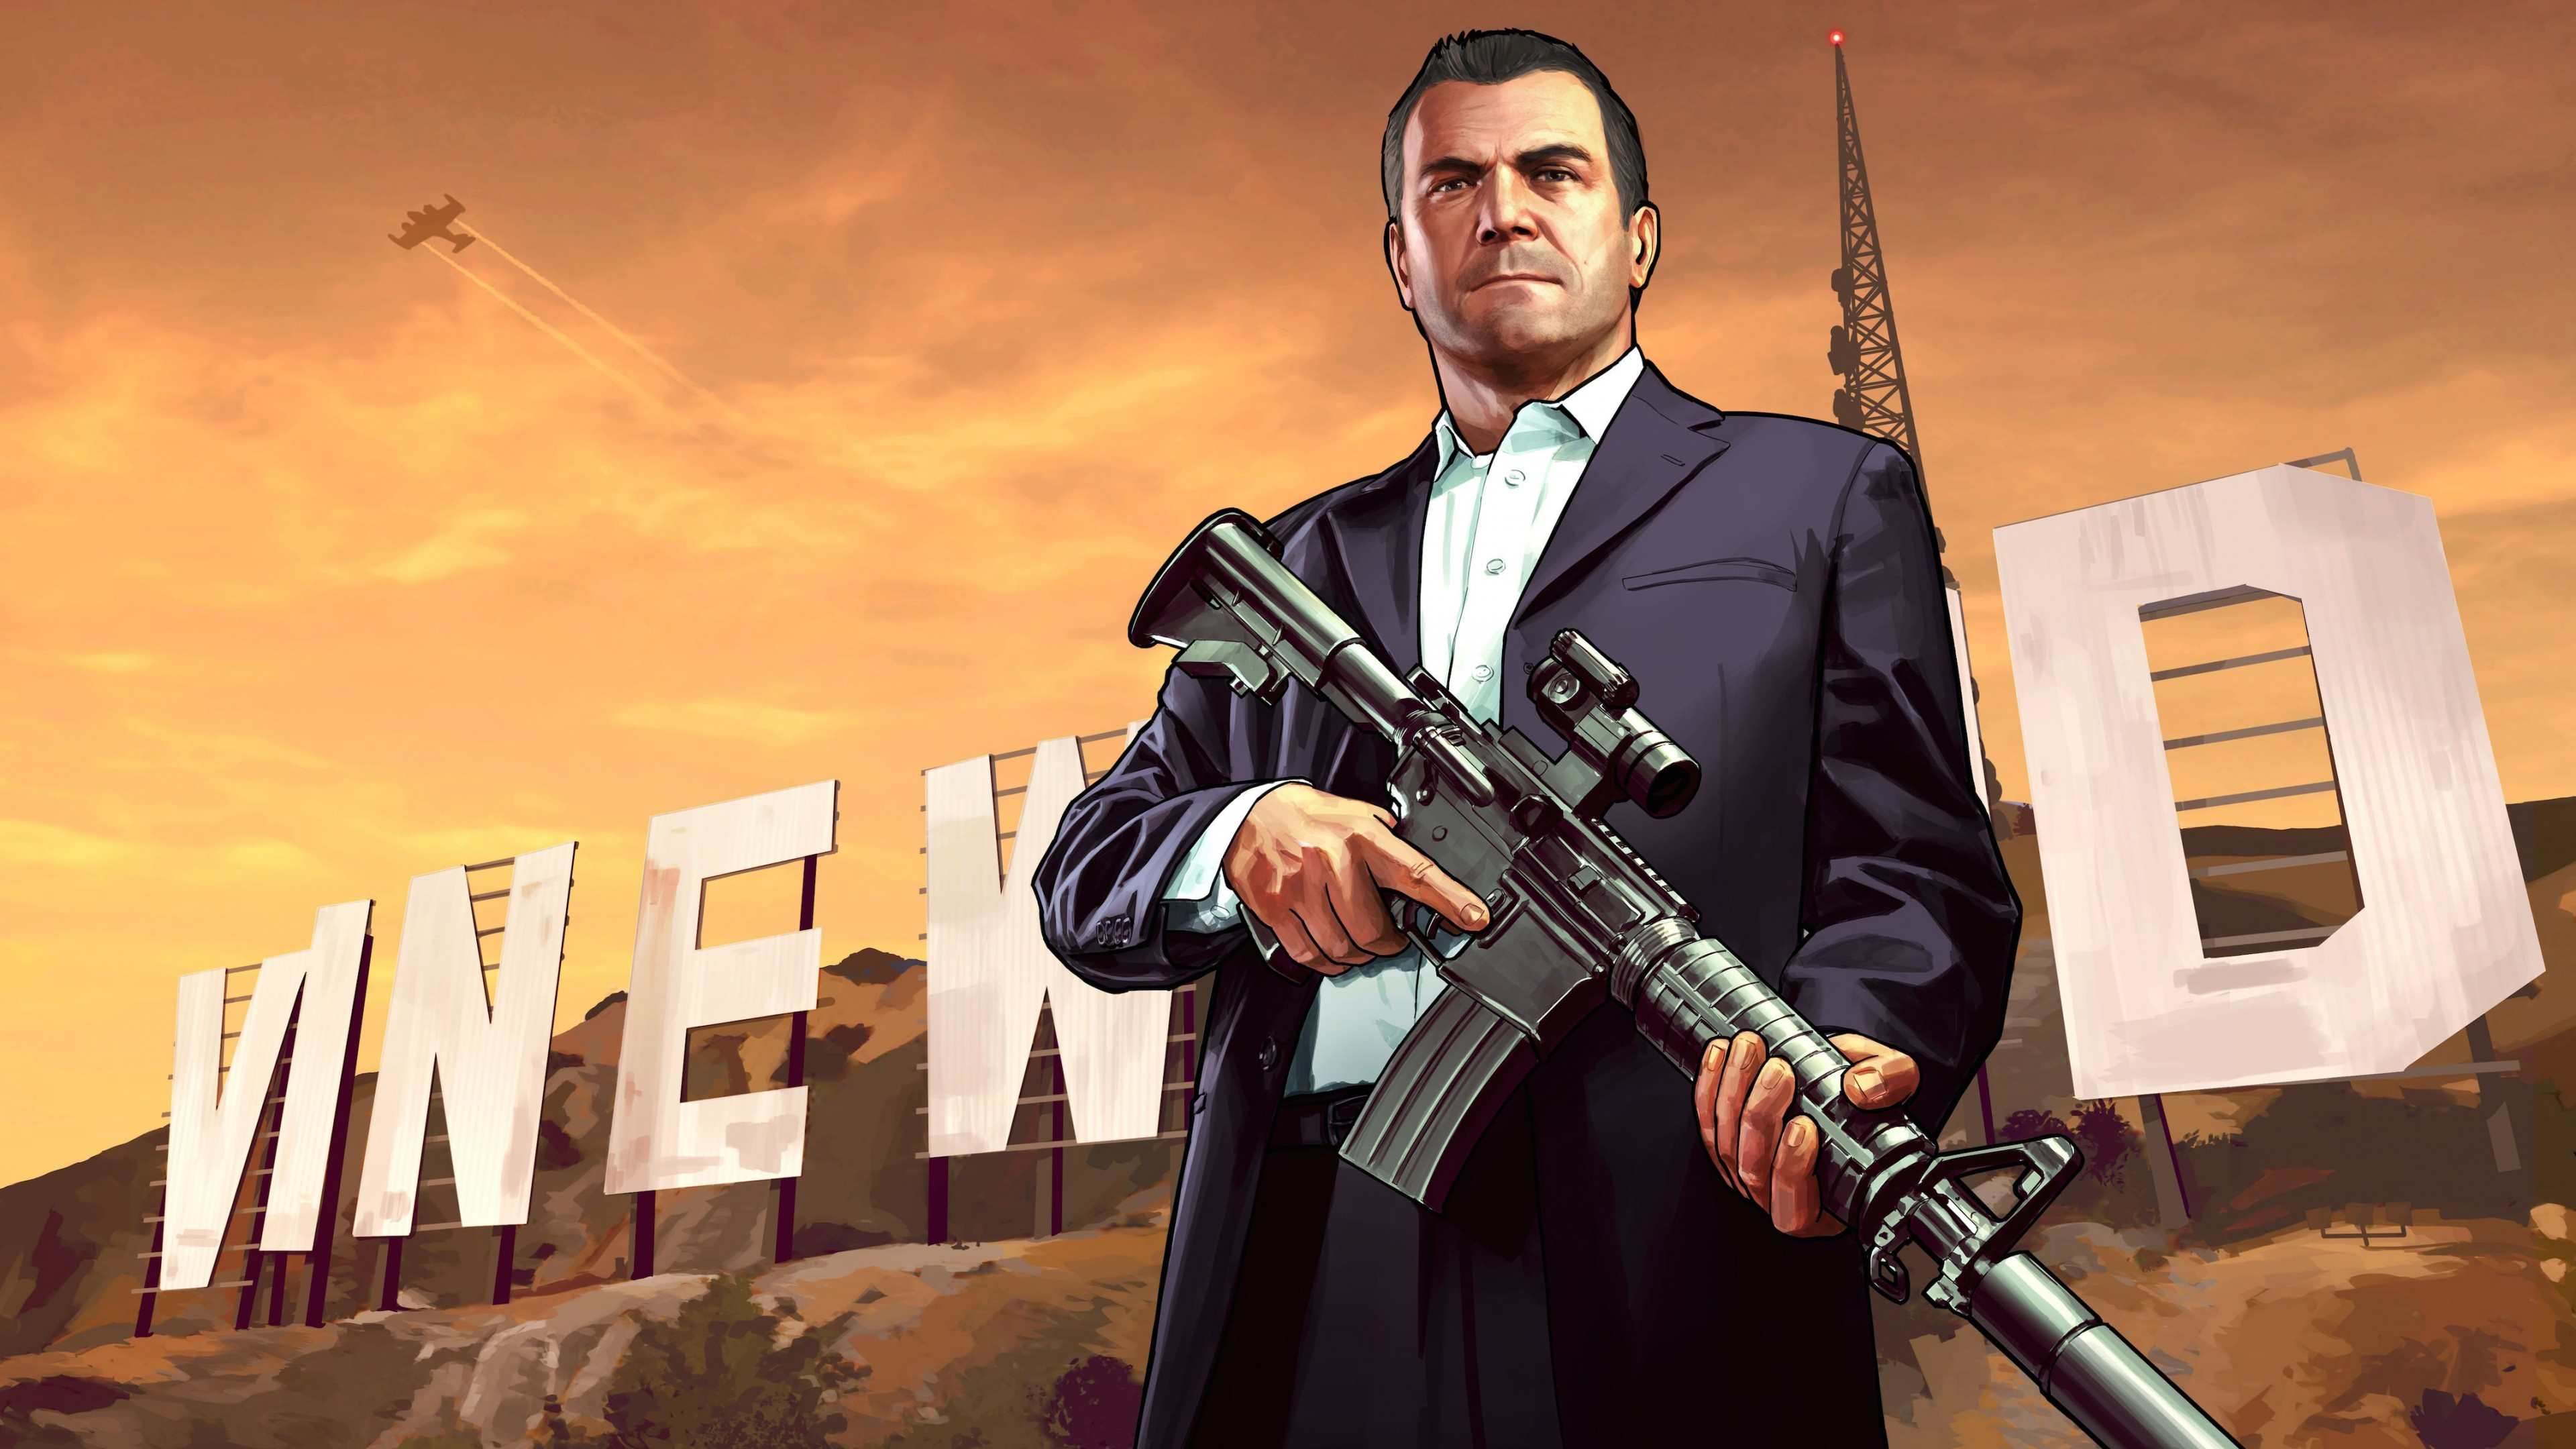 GTA 5 : Michael De Santa Wallpaper for Desktop 4K 3840x2160